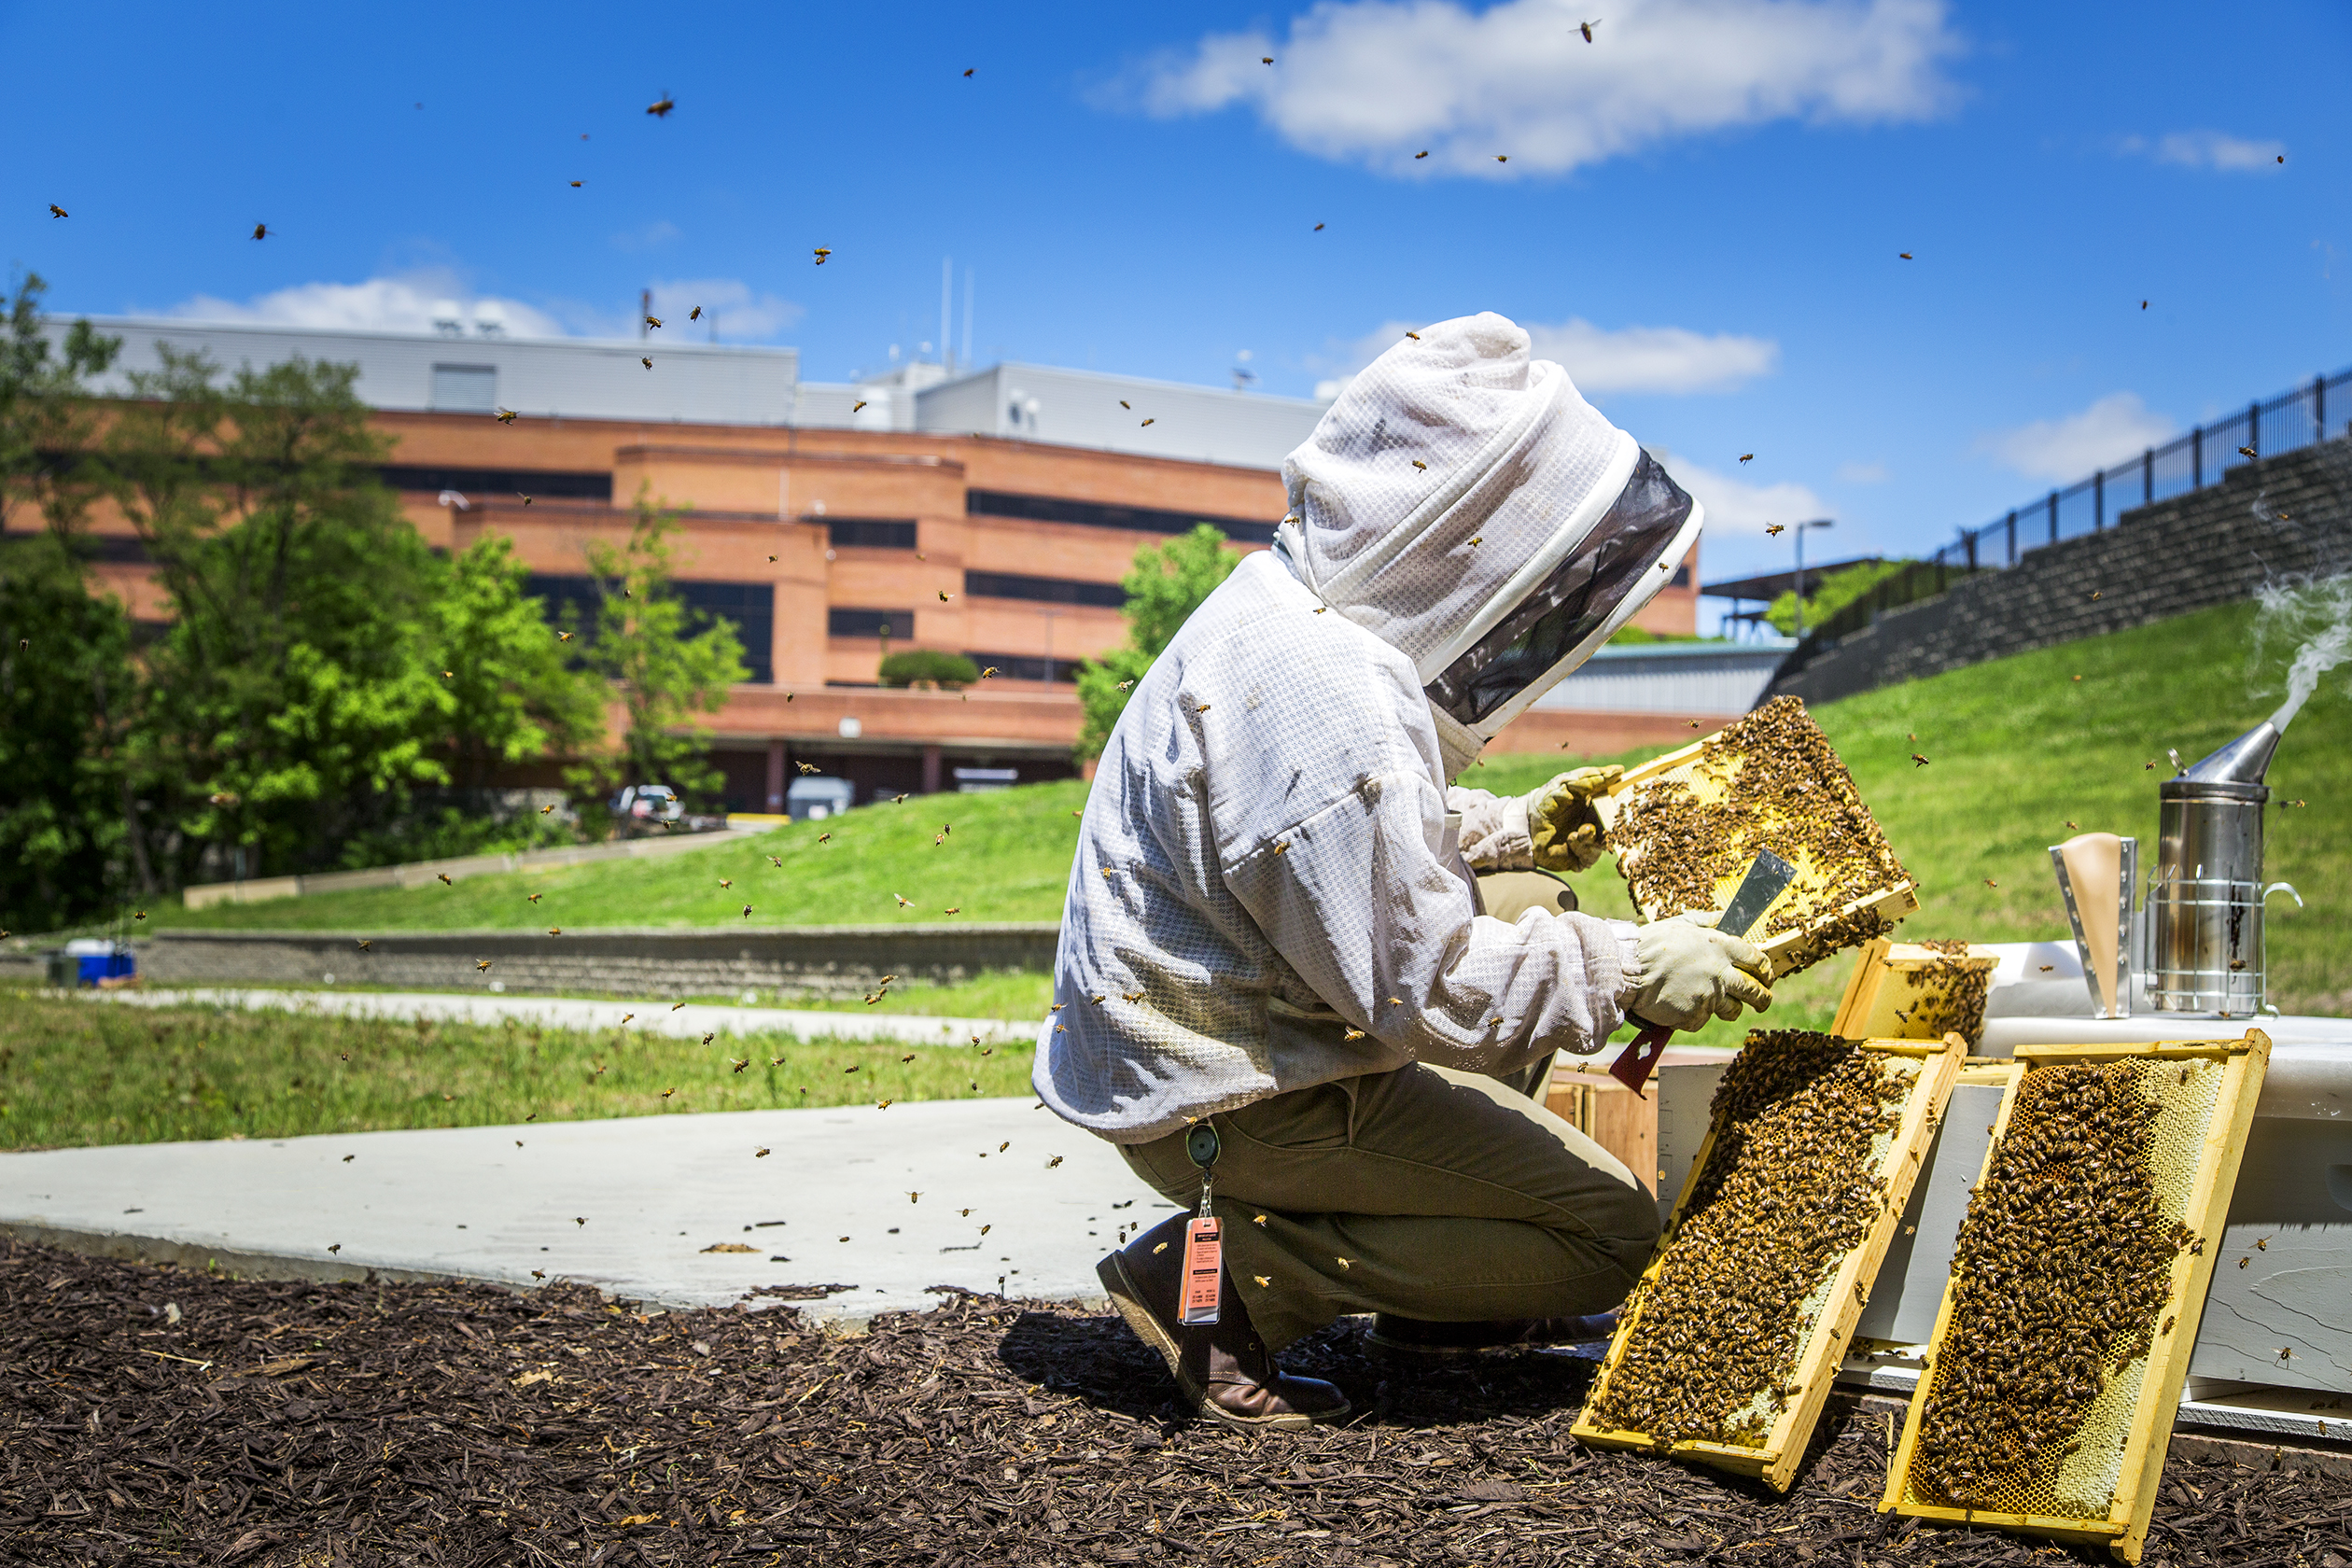 Alex Inberg, the Varroa Project lead, checks hives of honey bees located outside Monsanto's research facility in Chesterfield, Mo., on Thursday, May 5, 2016. Photo by Ryan Donnell